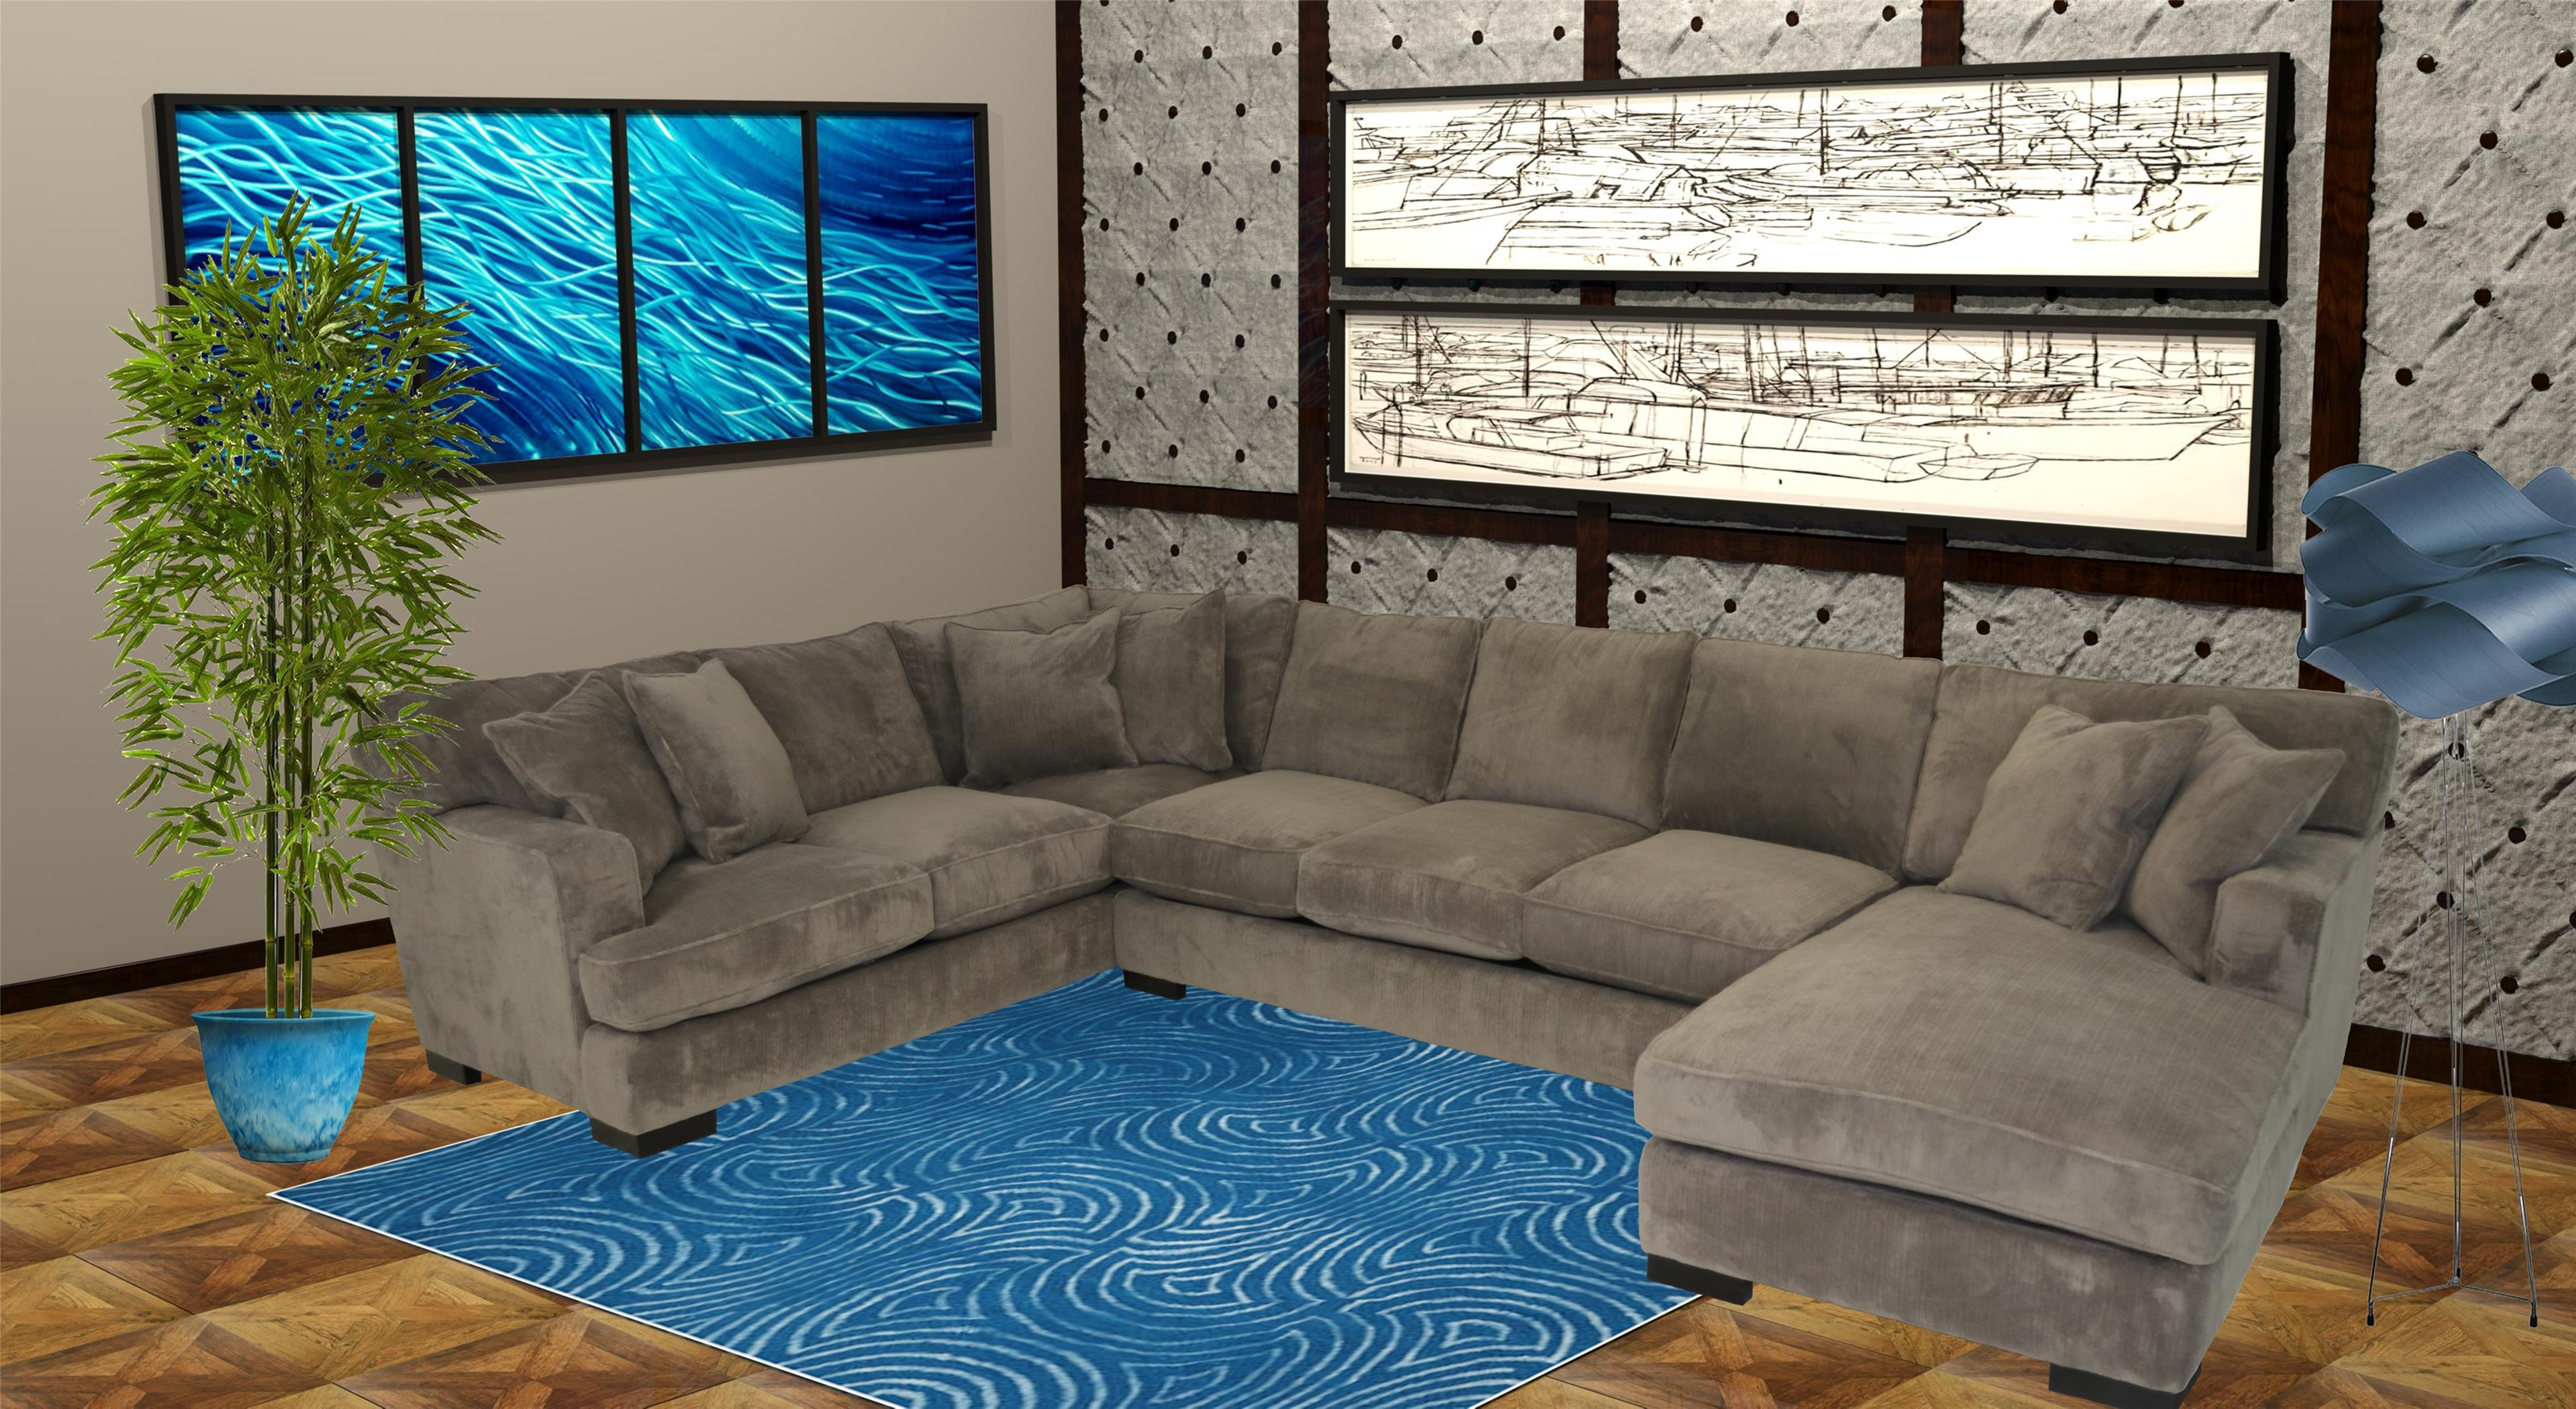 Reeds Trading Company 4000 3 Piece Sectional - Item Number: 4000-Al Sofa+Raf Chaise+Laf Tux